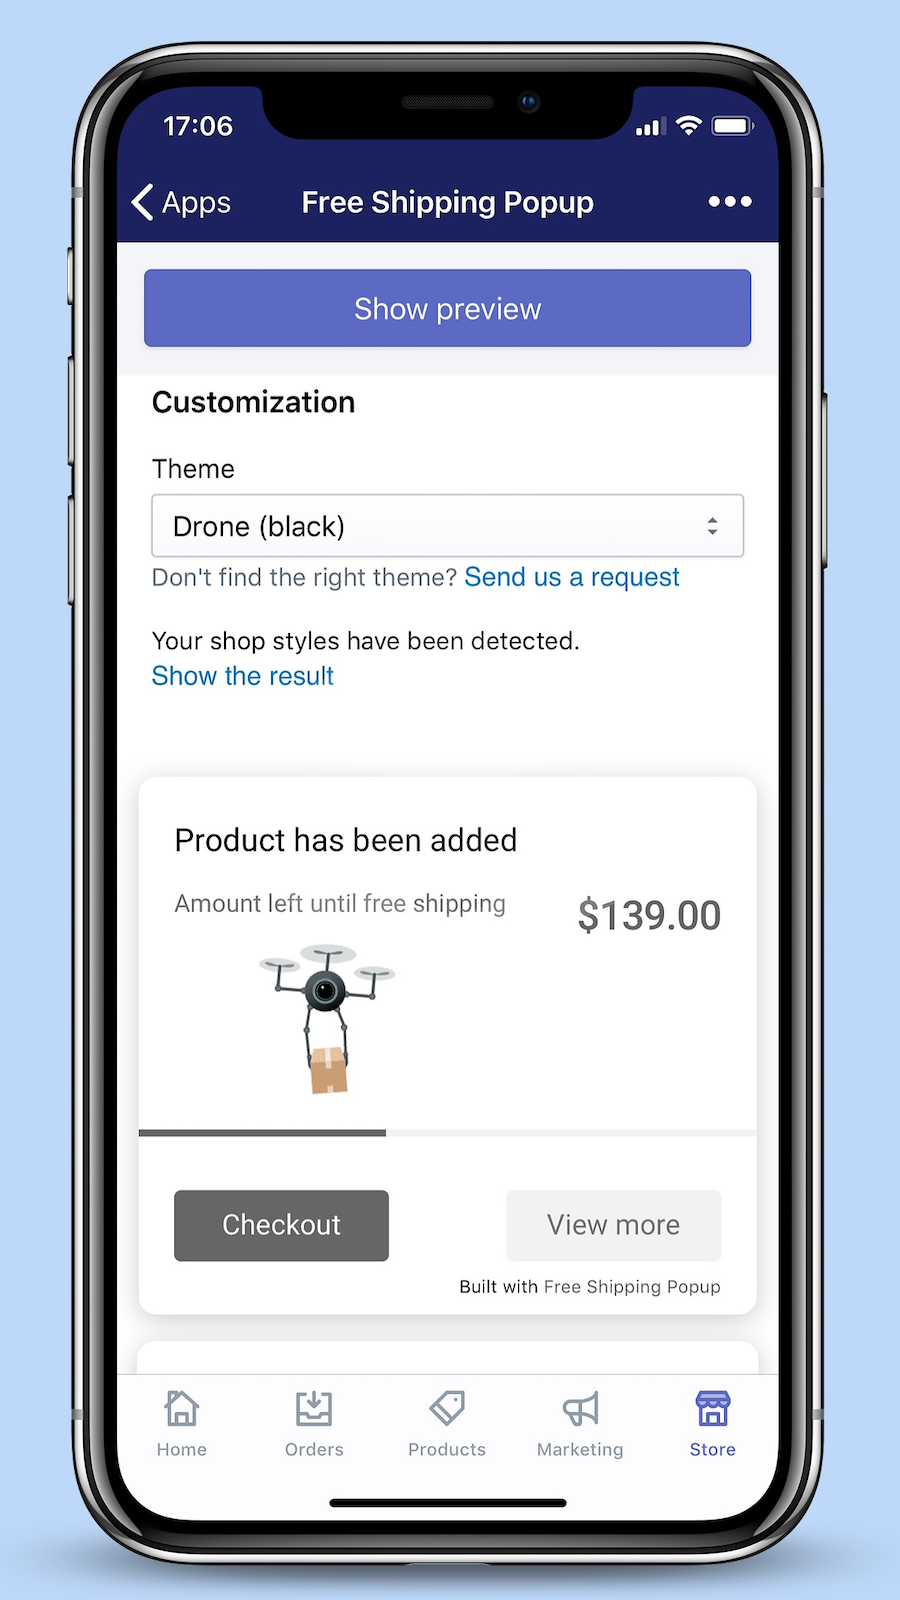 Free Shipping Popup – Admin area (Mobile)